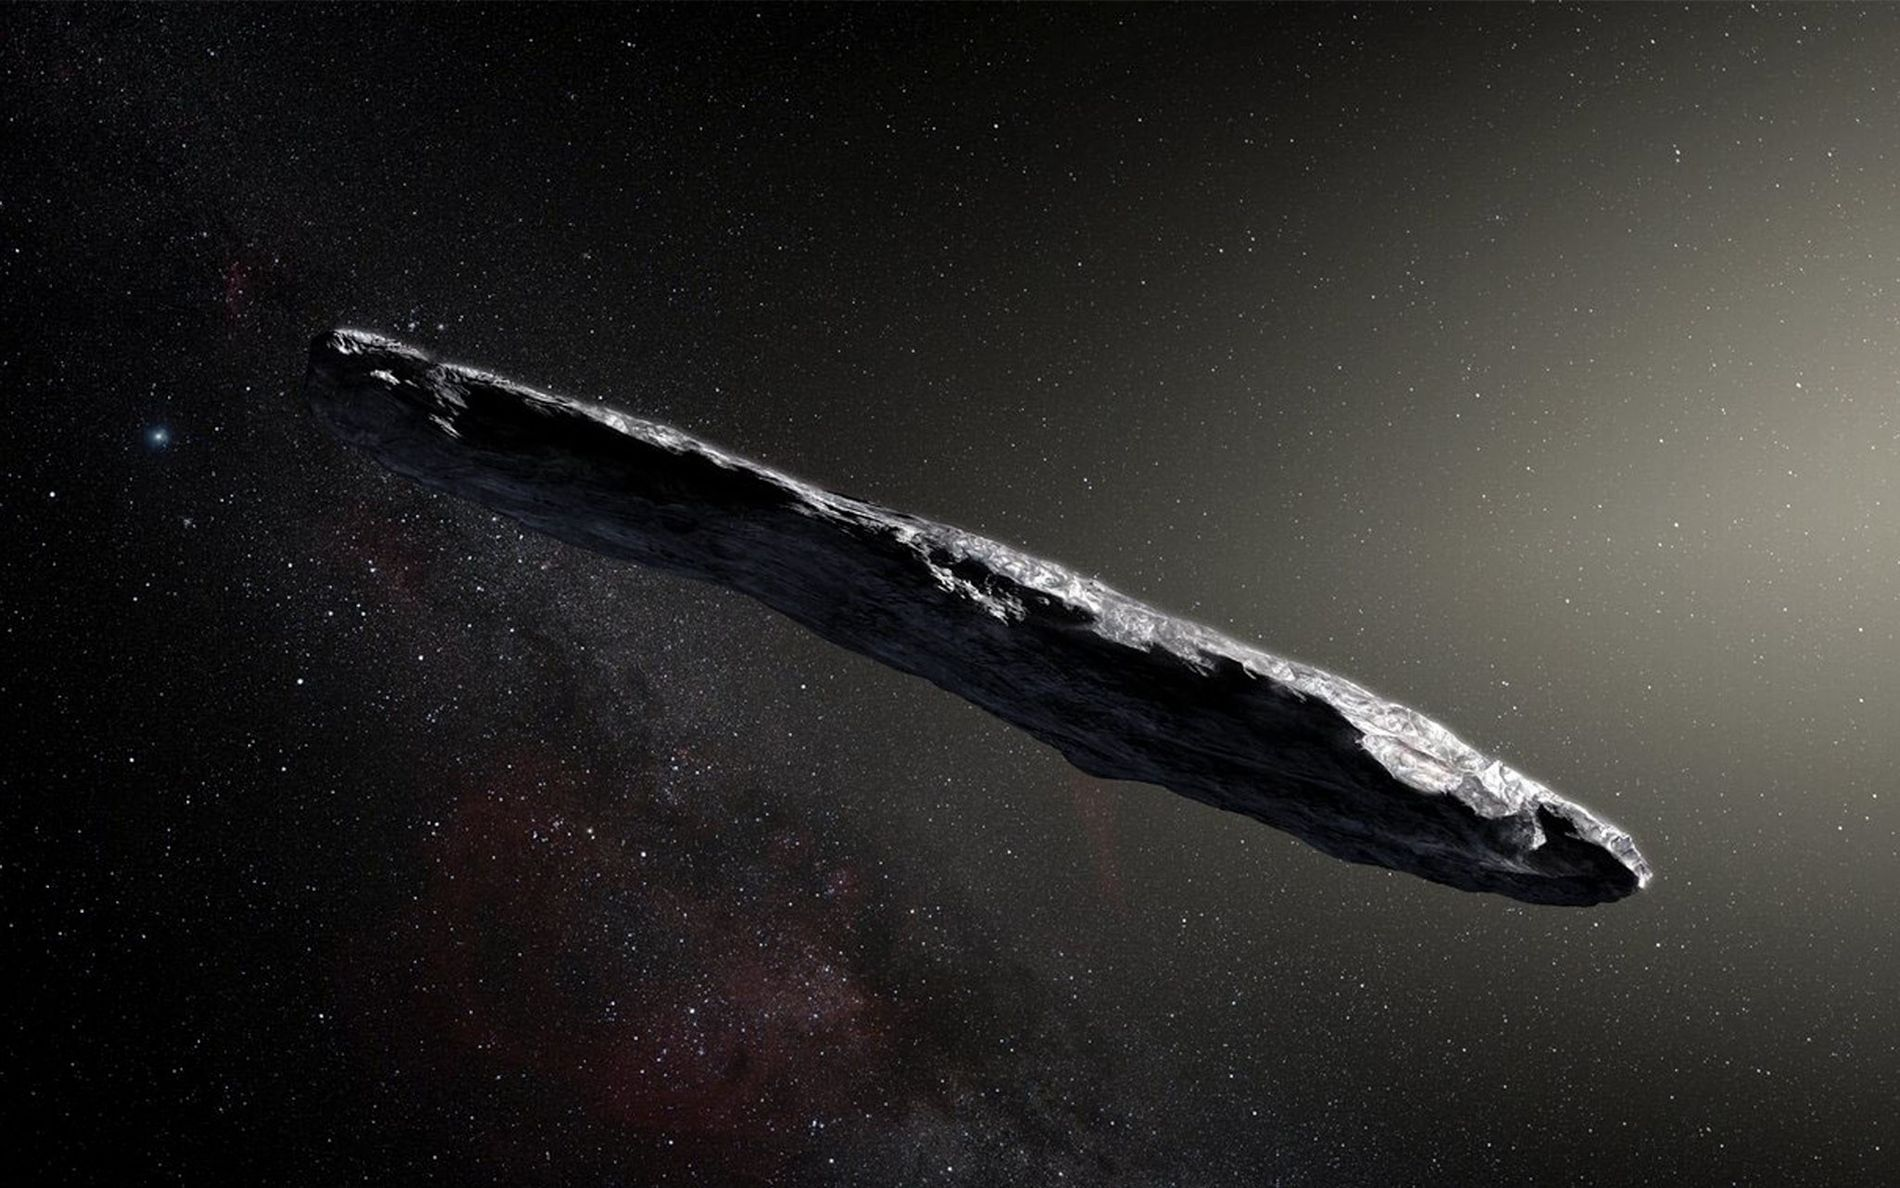 Asteroide interestelar 'Oumuamua